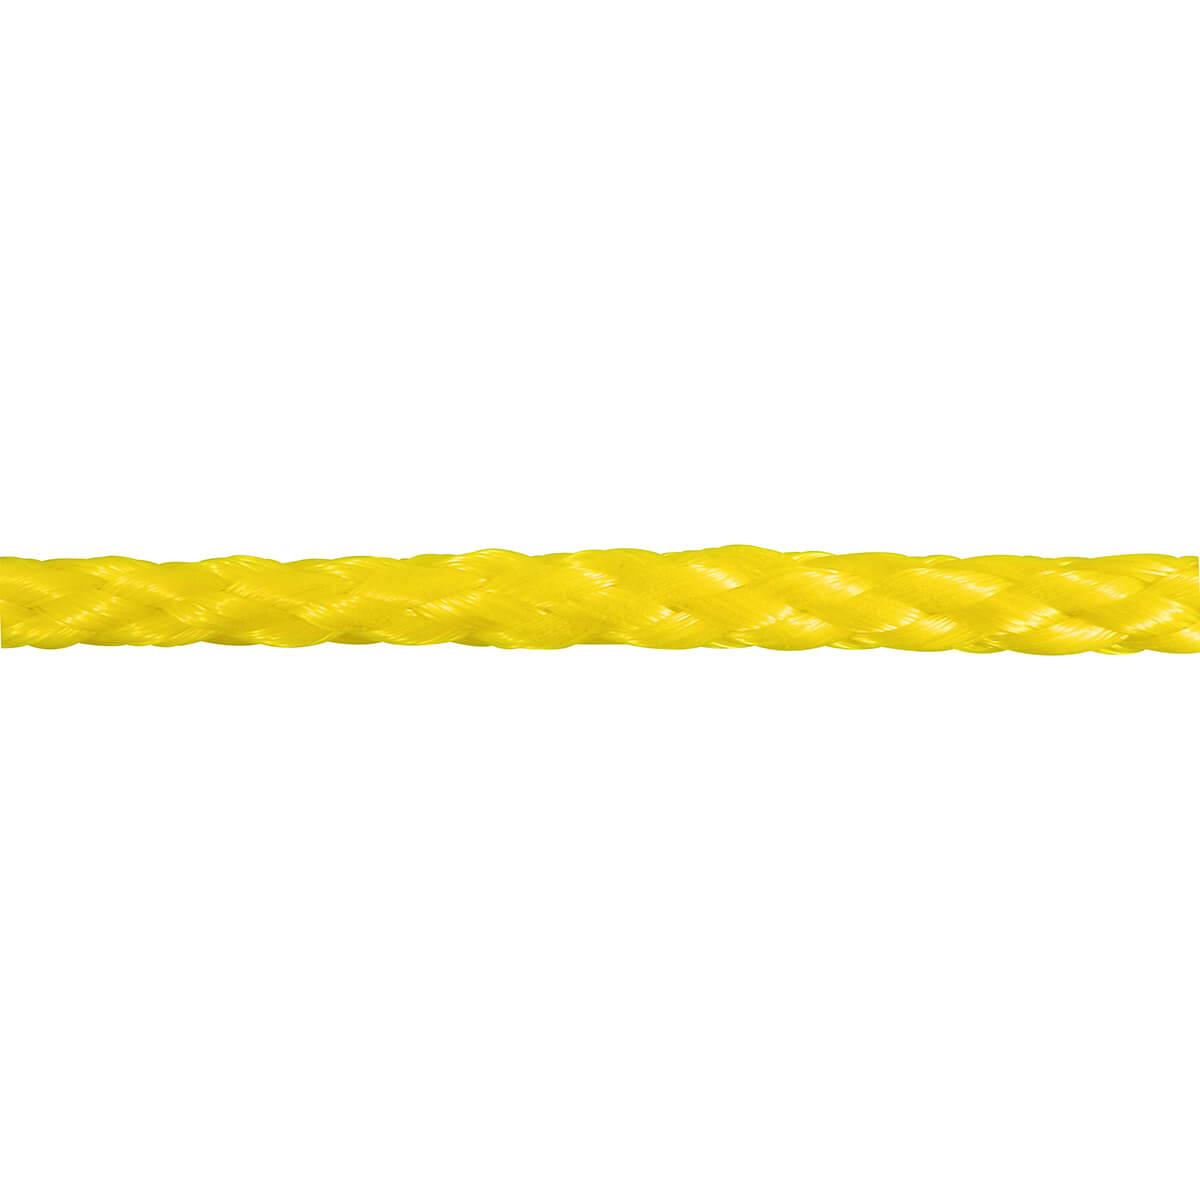 Polypropylene Hollow Core Rope - Yellow - 1/4-in x 50-ft